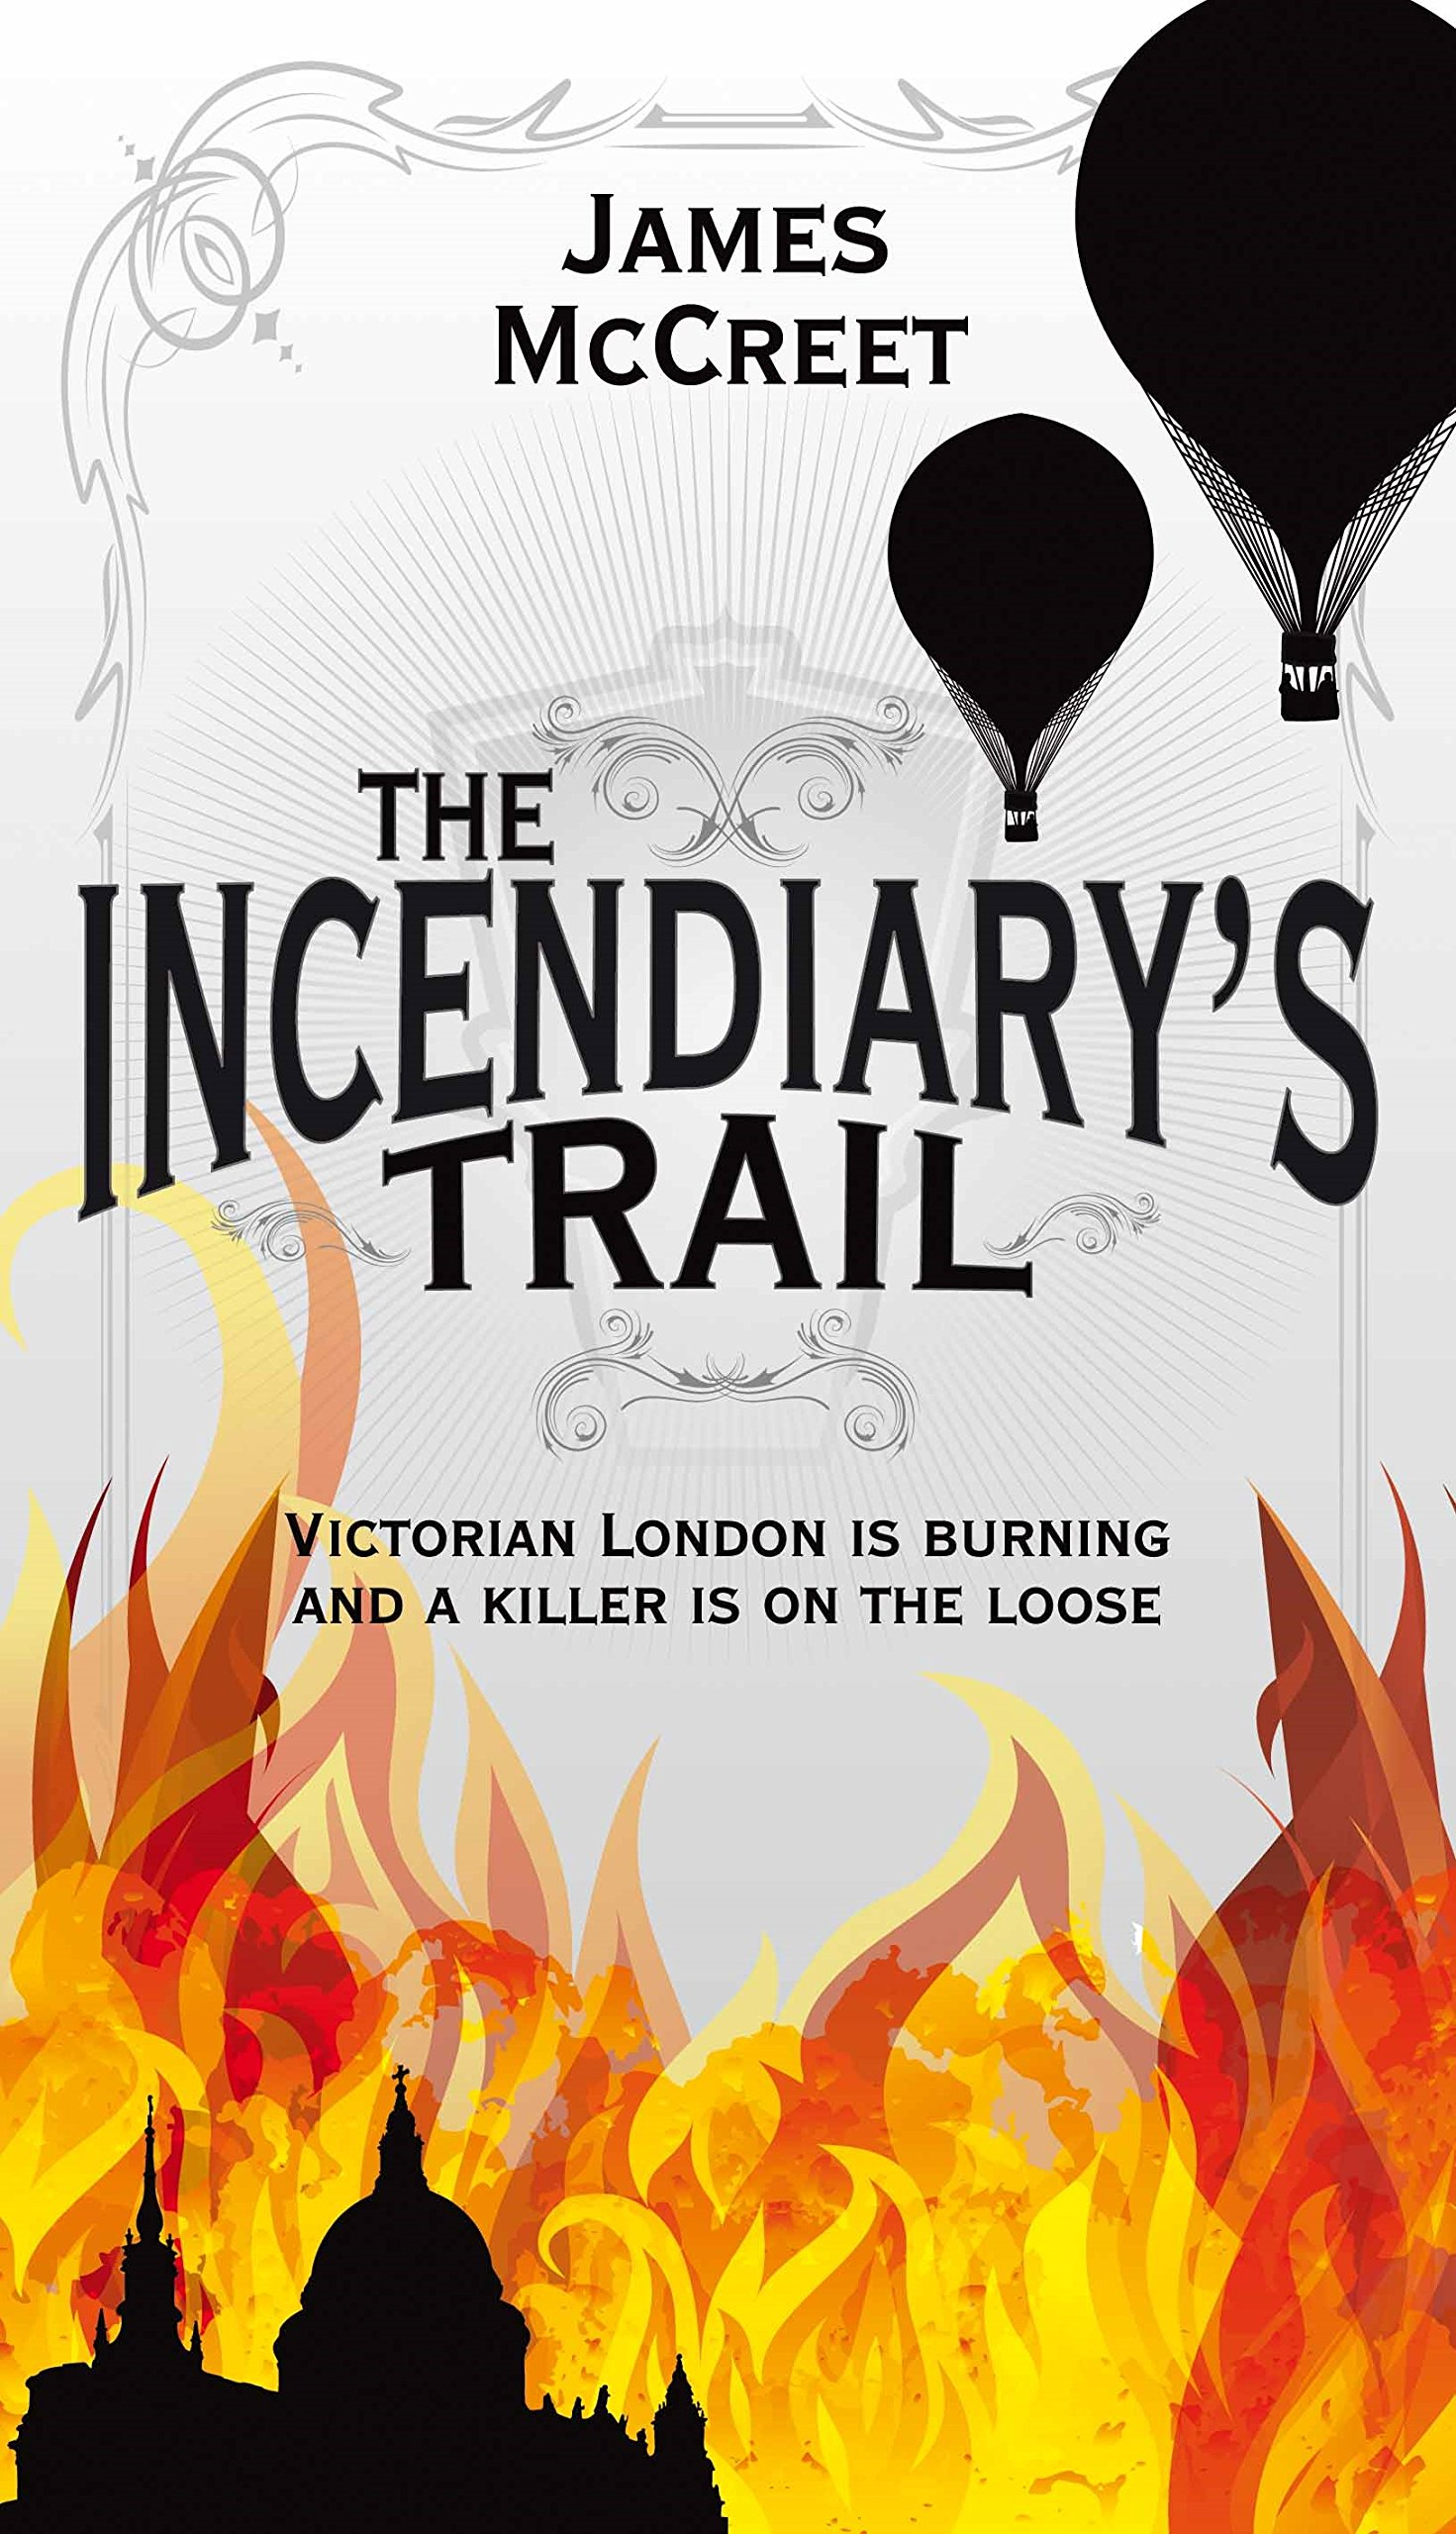 Amazon.com: The Incendiary's Trail (Macmillan New Writing) (9780230736276):  James Mccreet: Books